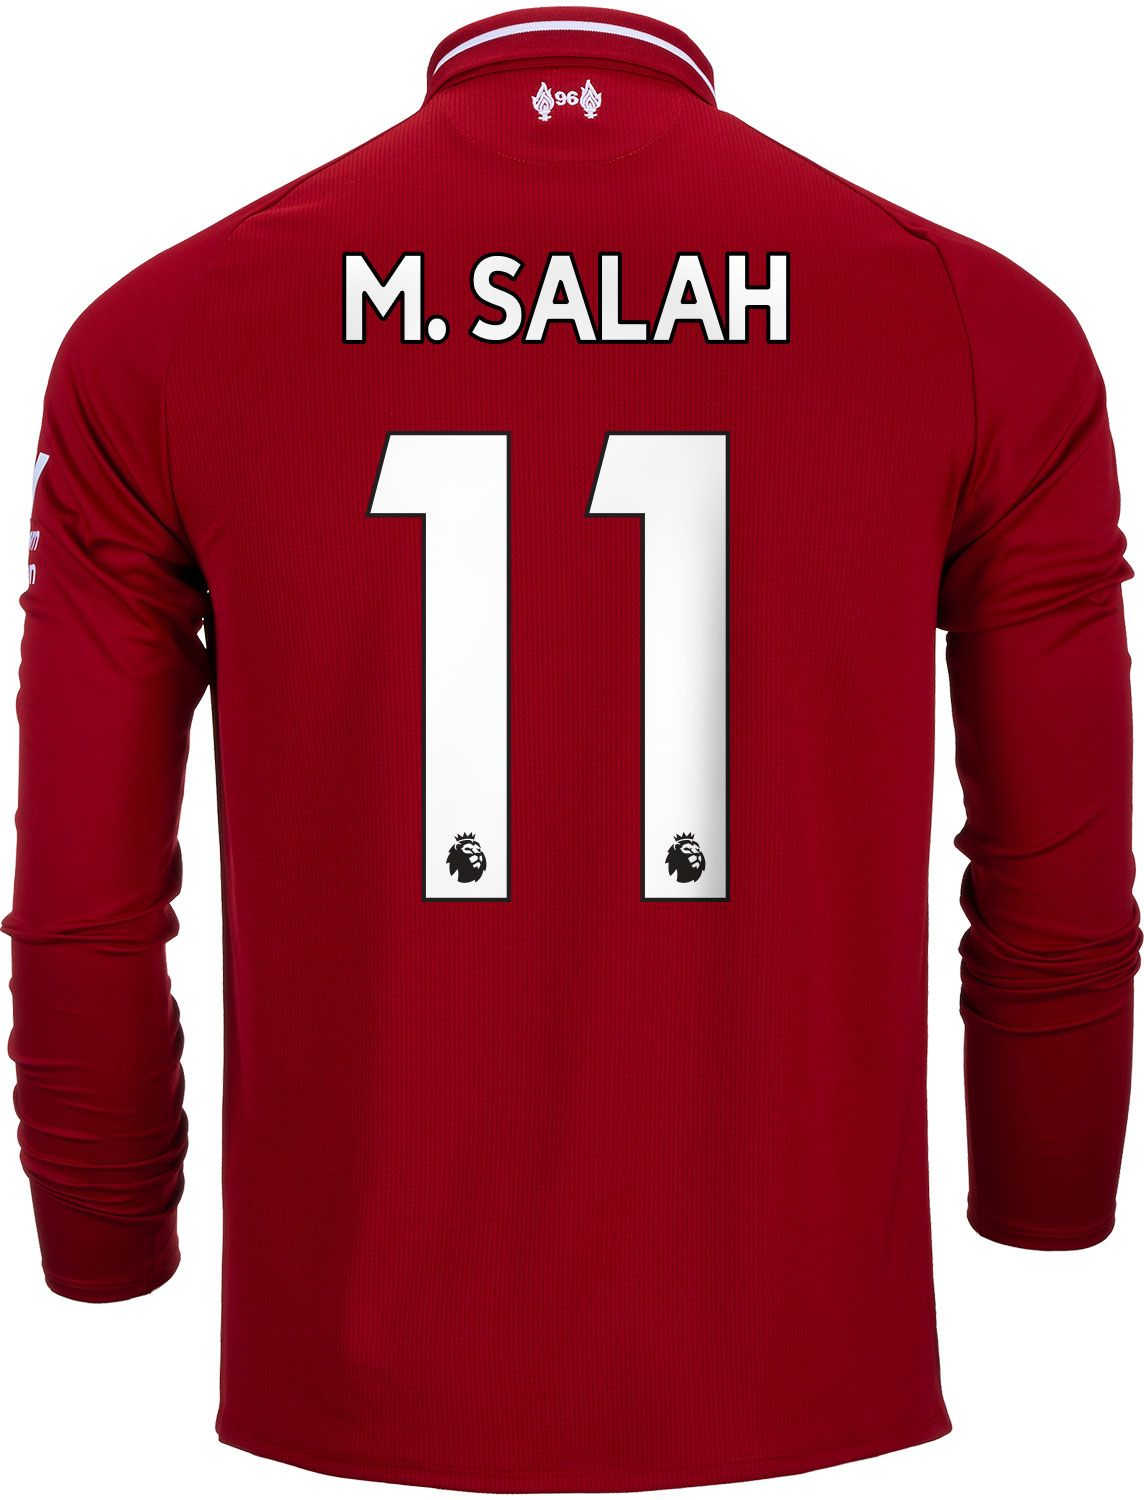 2018 19 New Balance Mohamed Salah Liverpool Home L S Jersey ... 84902bf91